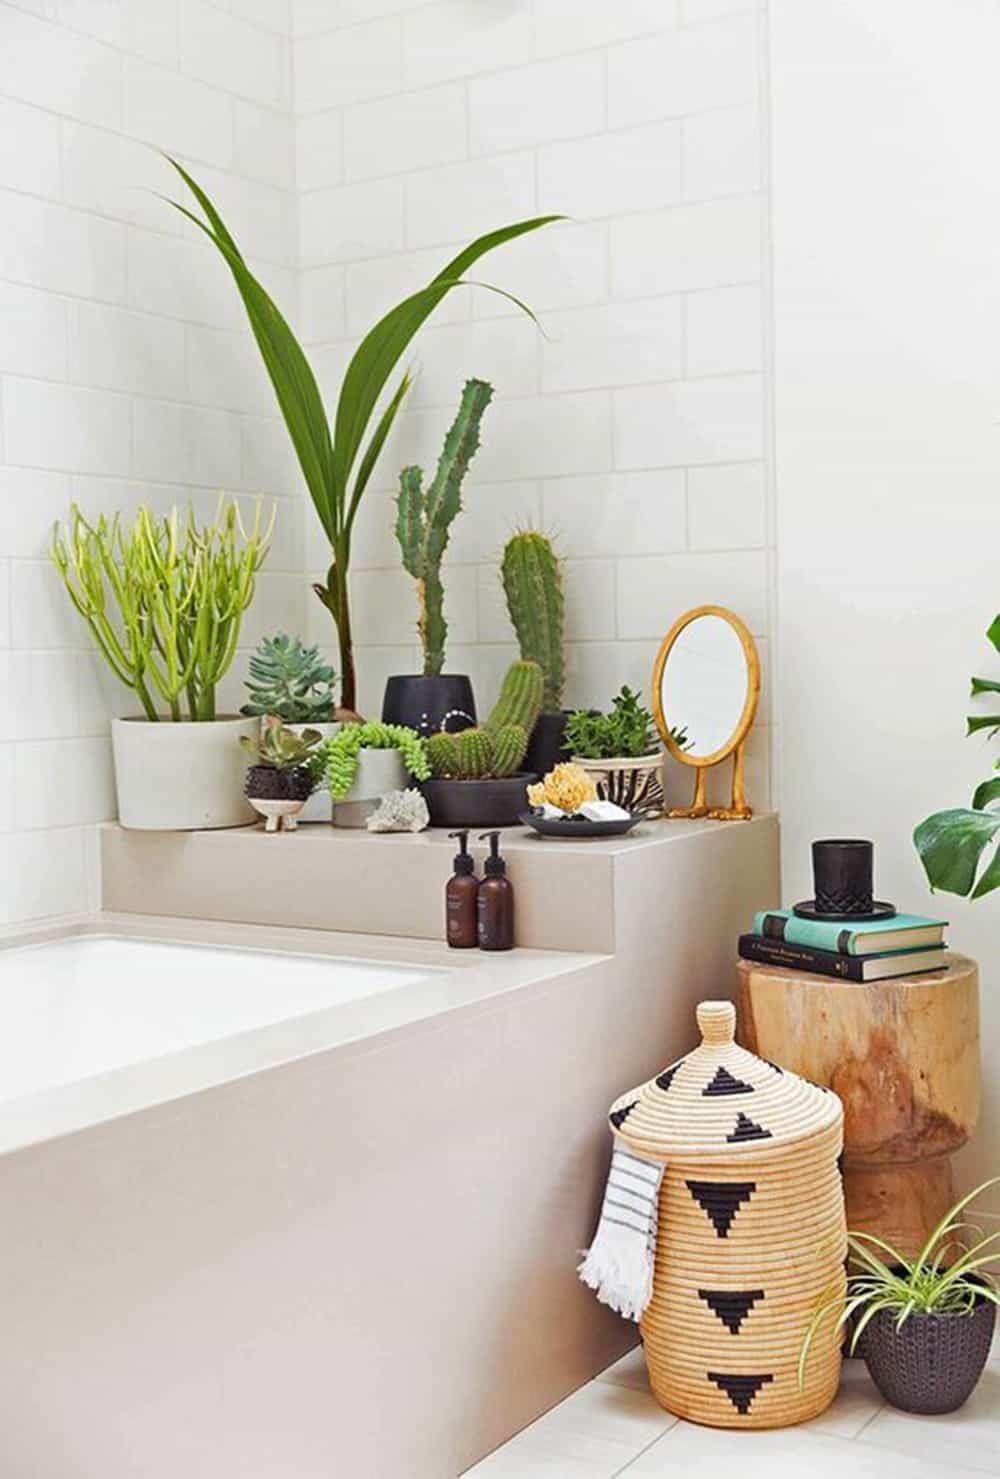 5 Tips to Choosing the Right Bathtub for Your Home